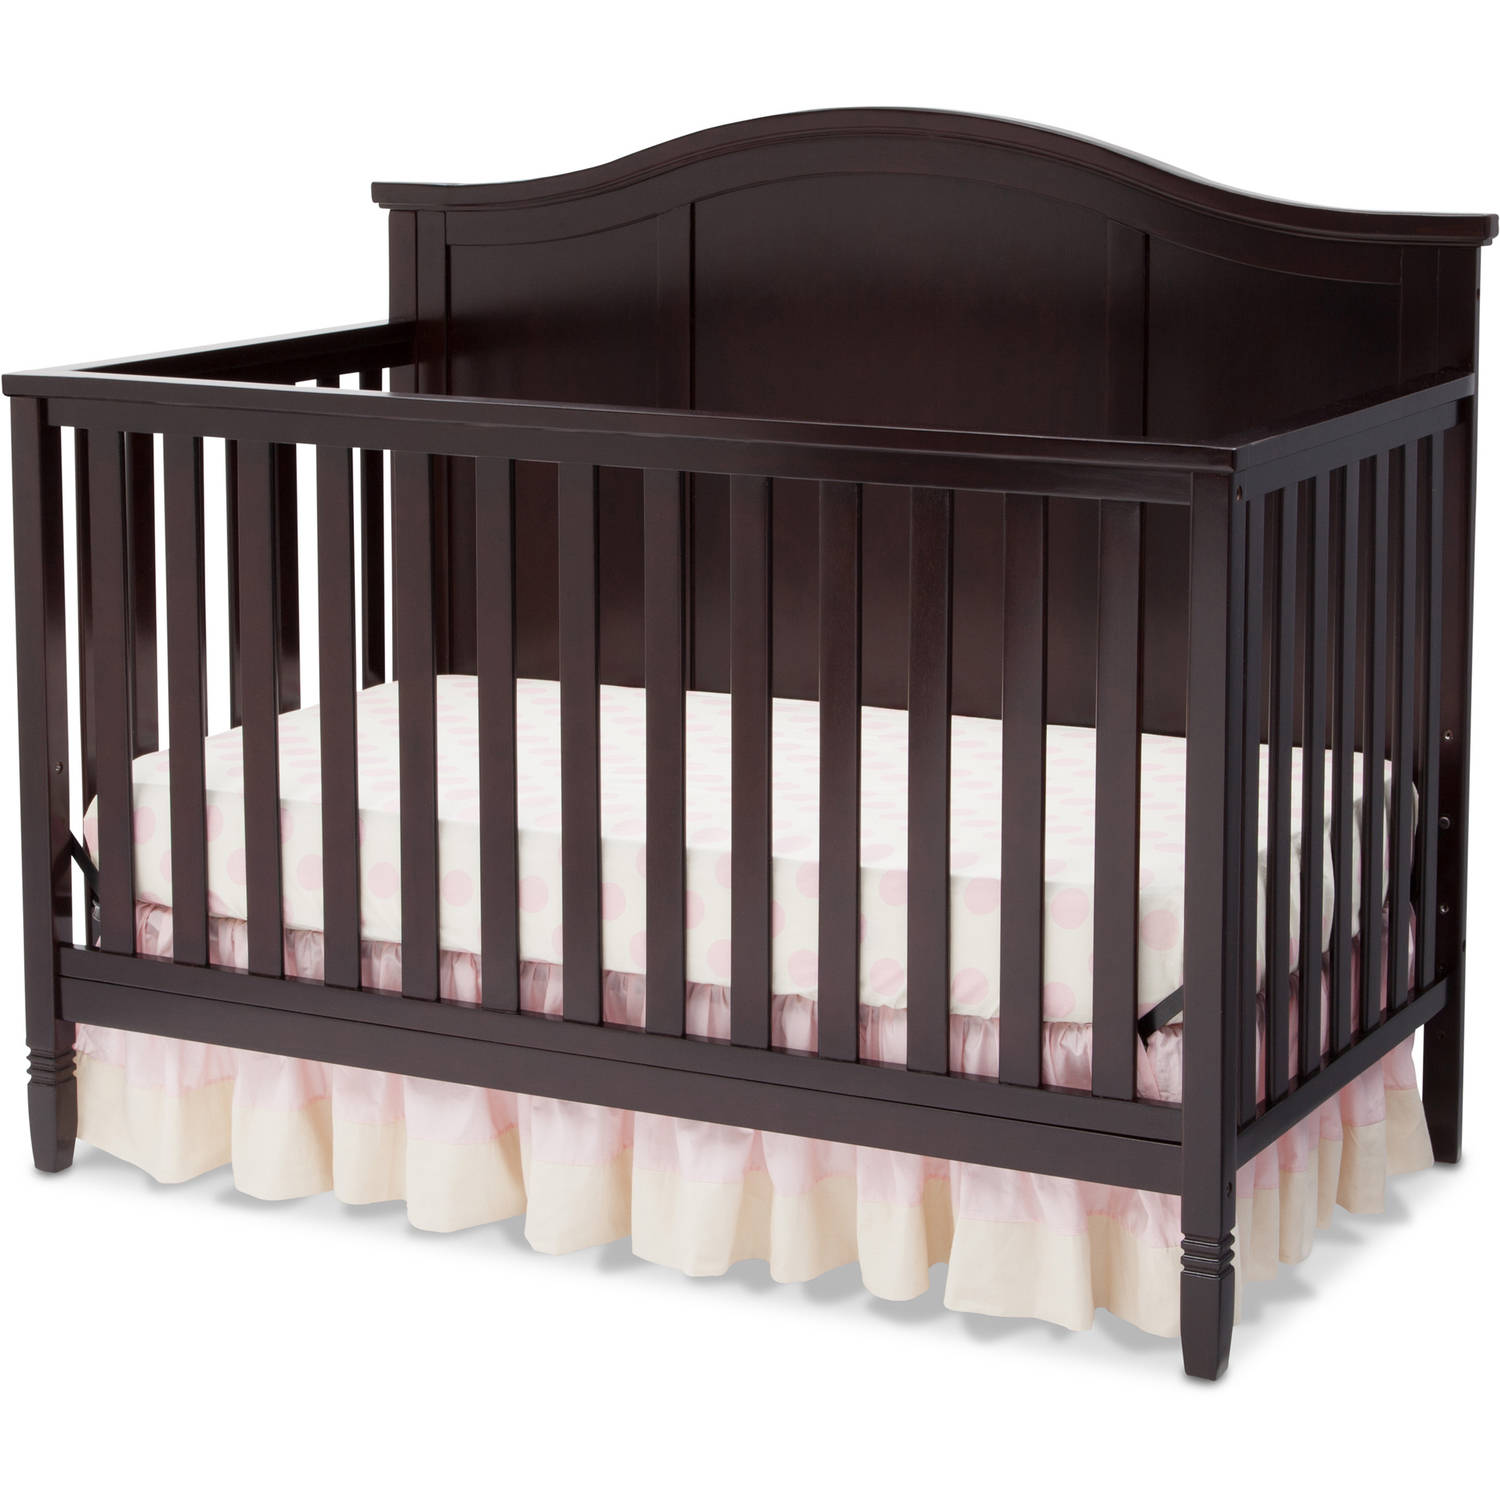 gray living collections eng everett crib baby details knightly products in convertible dorel sourceimage kids nursery antique